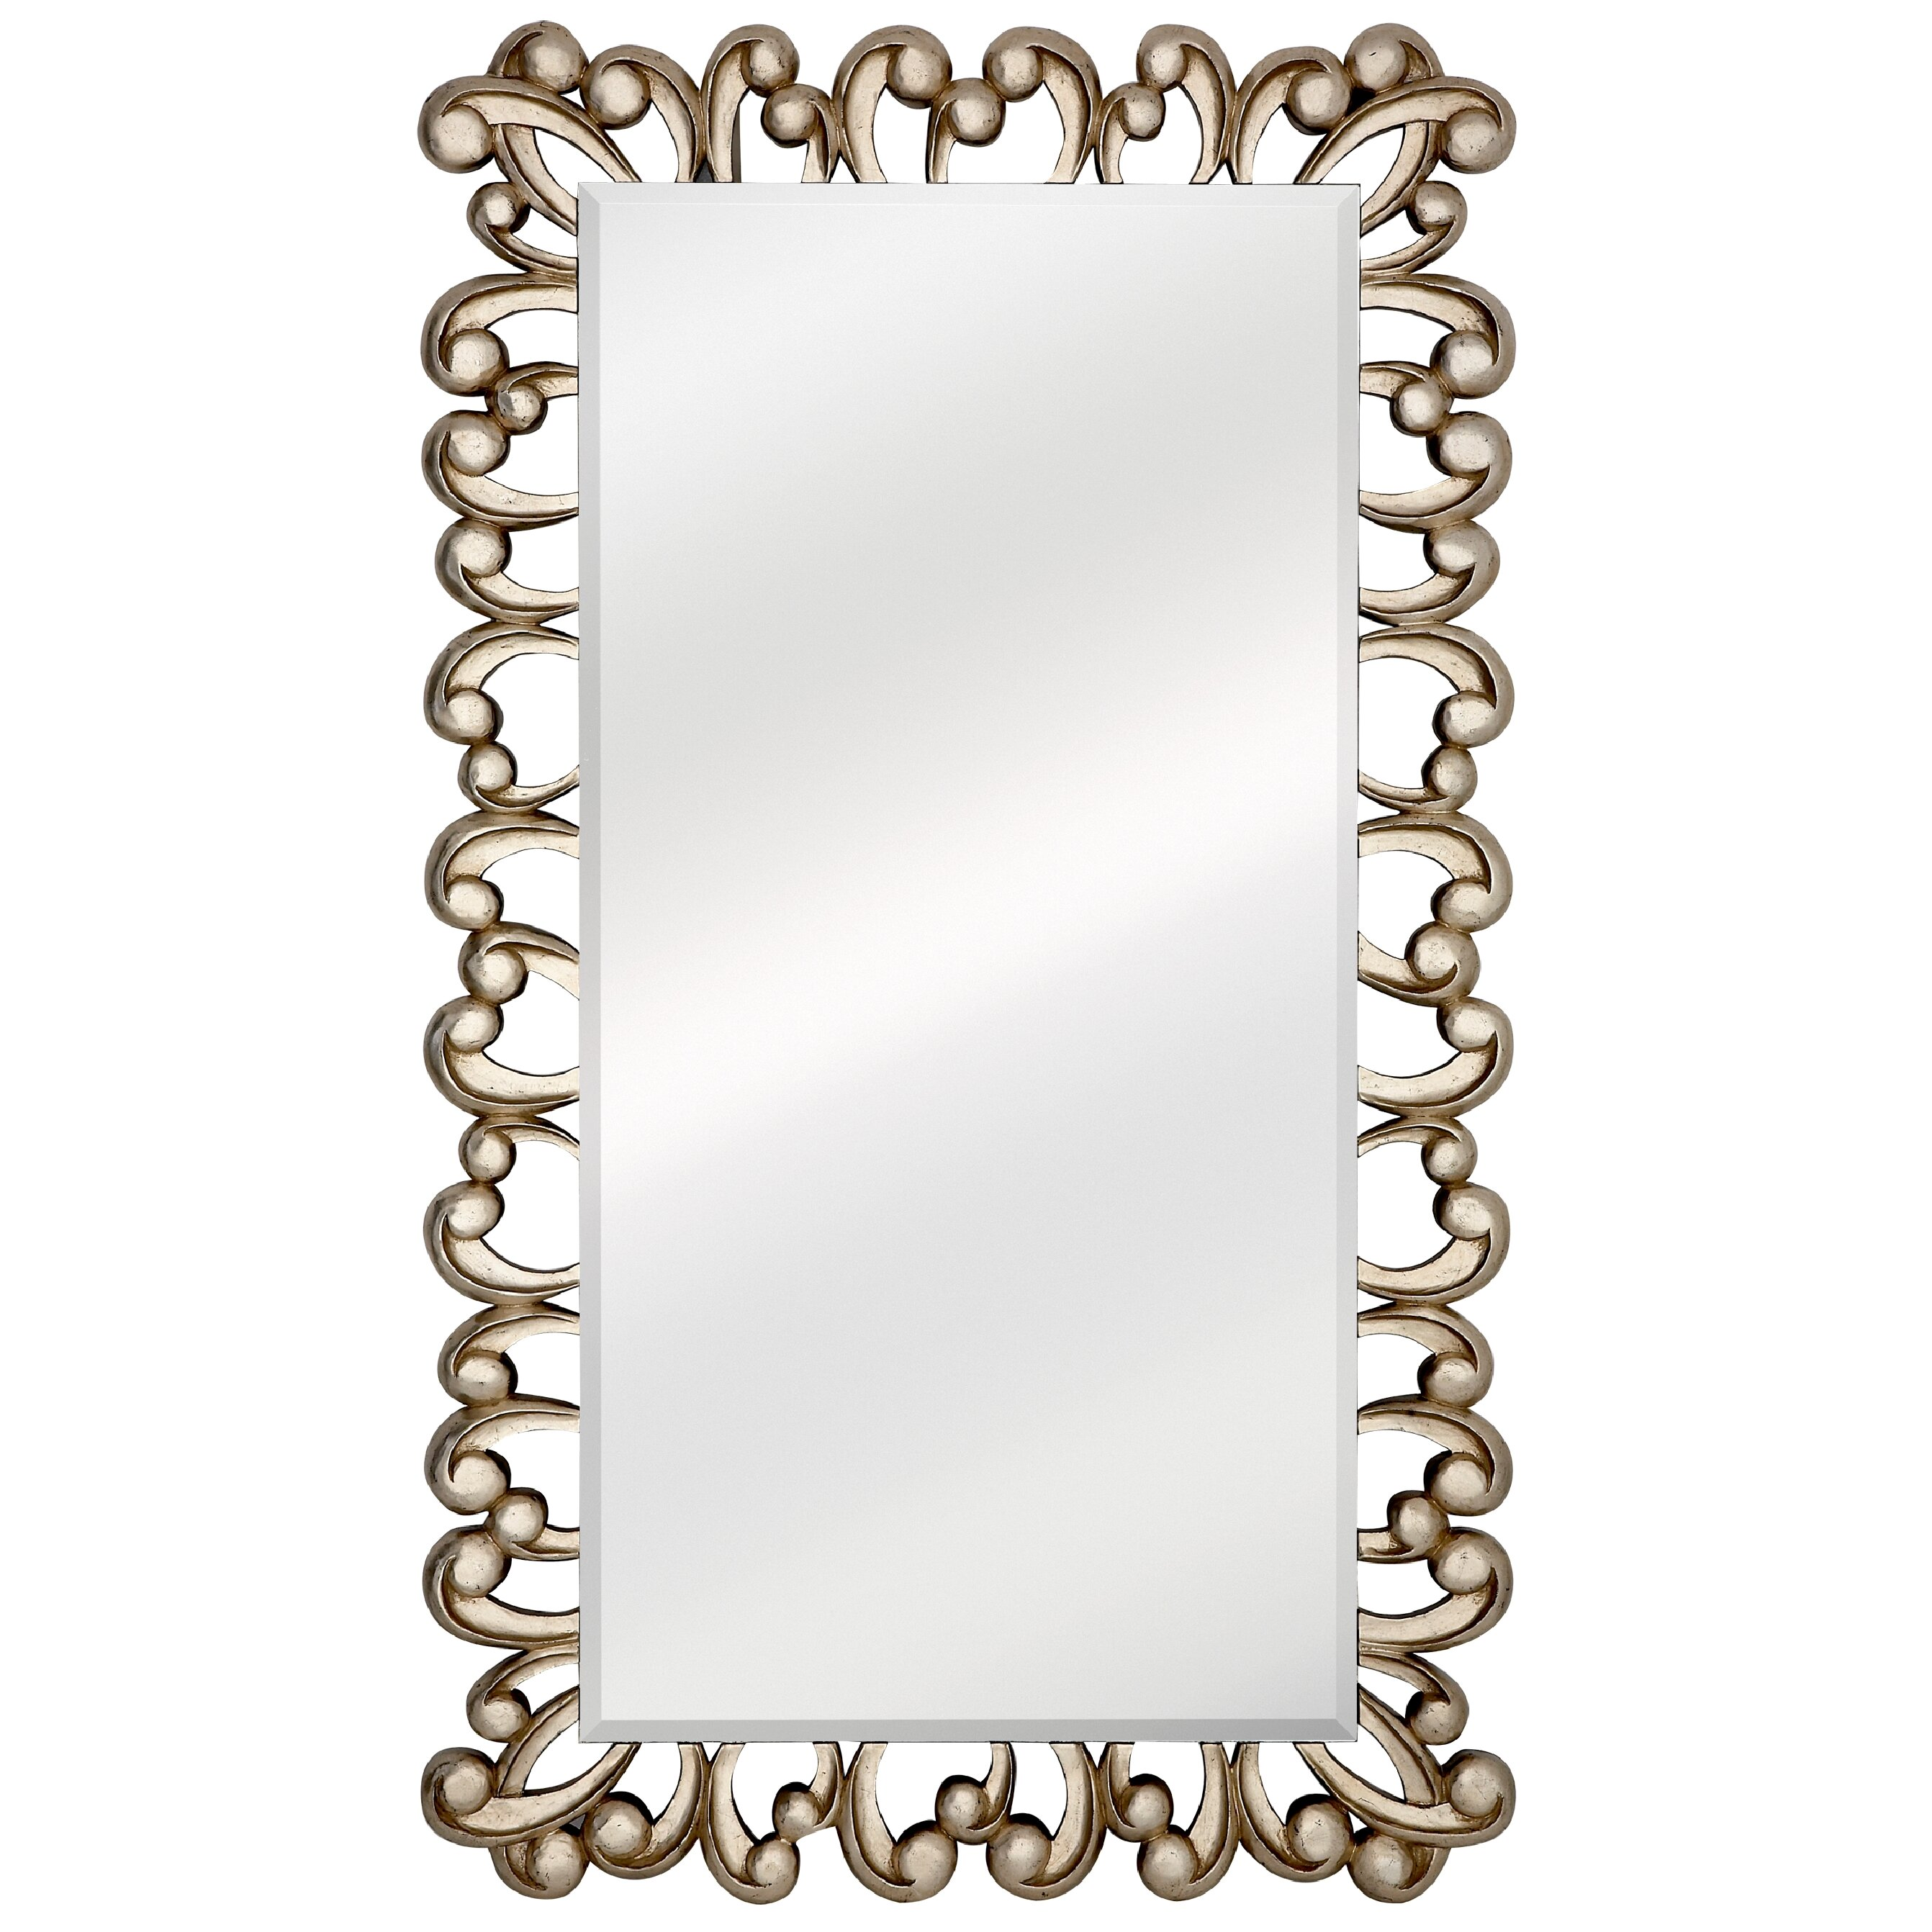 Majestic Mirror Large Stylish Silver Rectangular Beveled